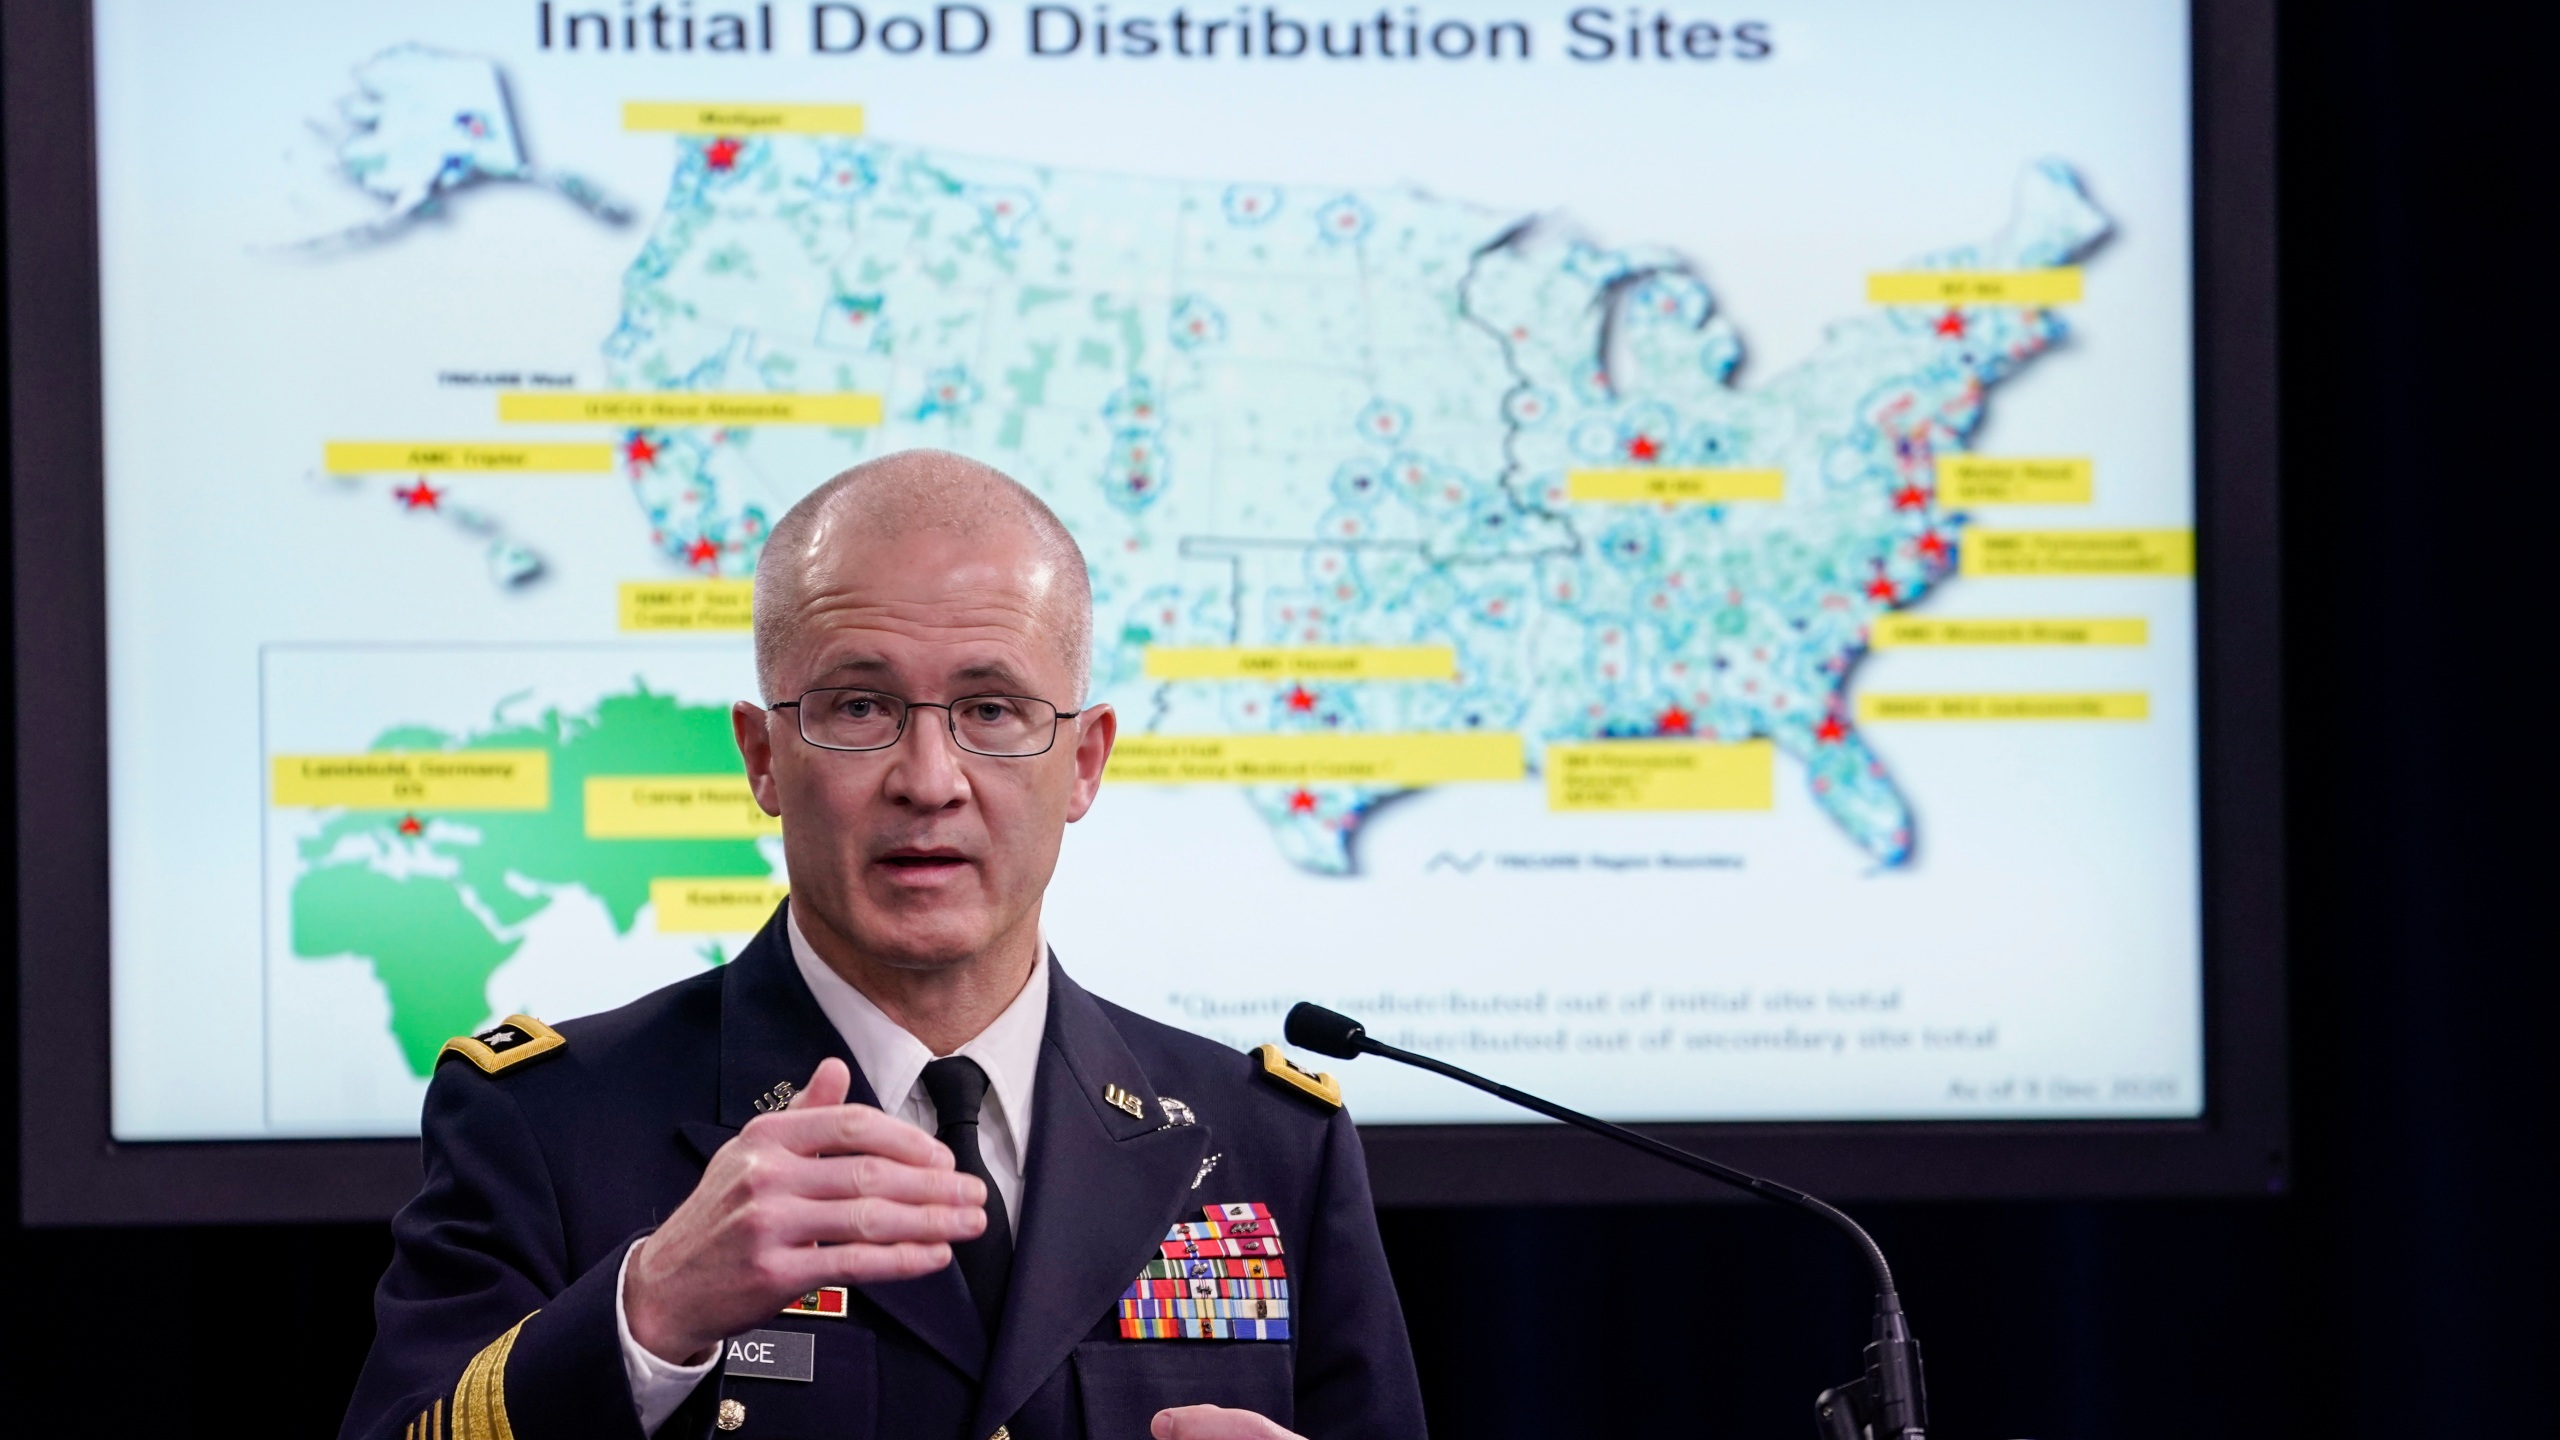 Director of the Defense Health Agency Army Lt. Gen. Ronald Place speaks to reporters during a press conference to discuss plans for COVID-19 vaccine distribution to members of the U.S. military, at the Pentagon on Dec. 9, 2020 in Arlington, Virginia. (Drew Angerer/Getty Images)